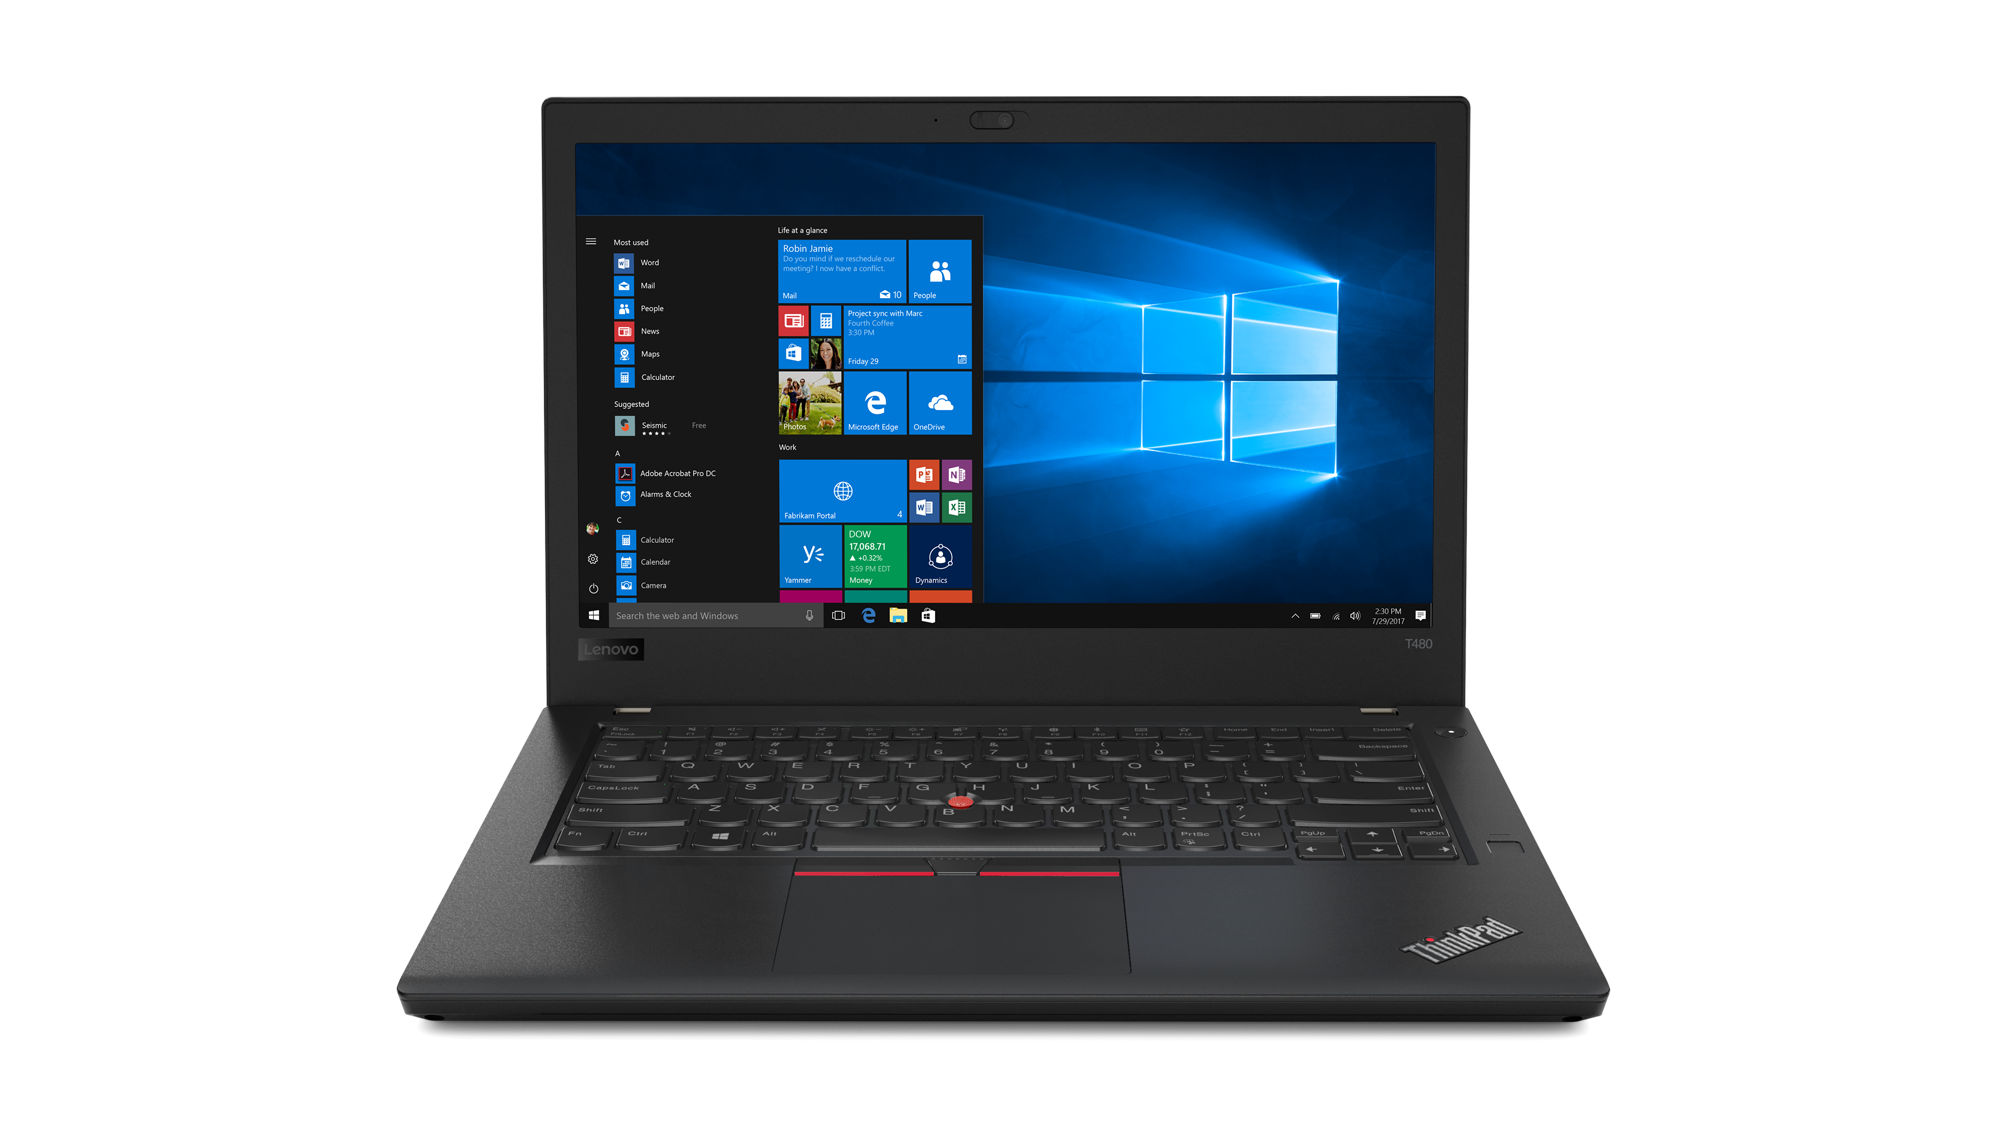 "Lenovo ThinkPad T480 i7-8550U/8GB/256GB SSD/UHD Graphics 620/14""FHD IPS/4G/Win10PRO/Black"